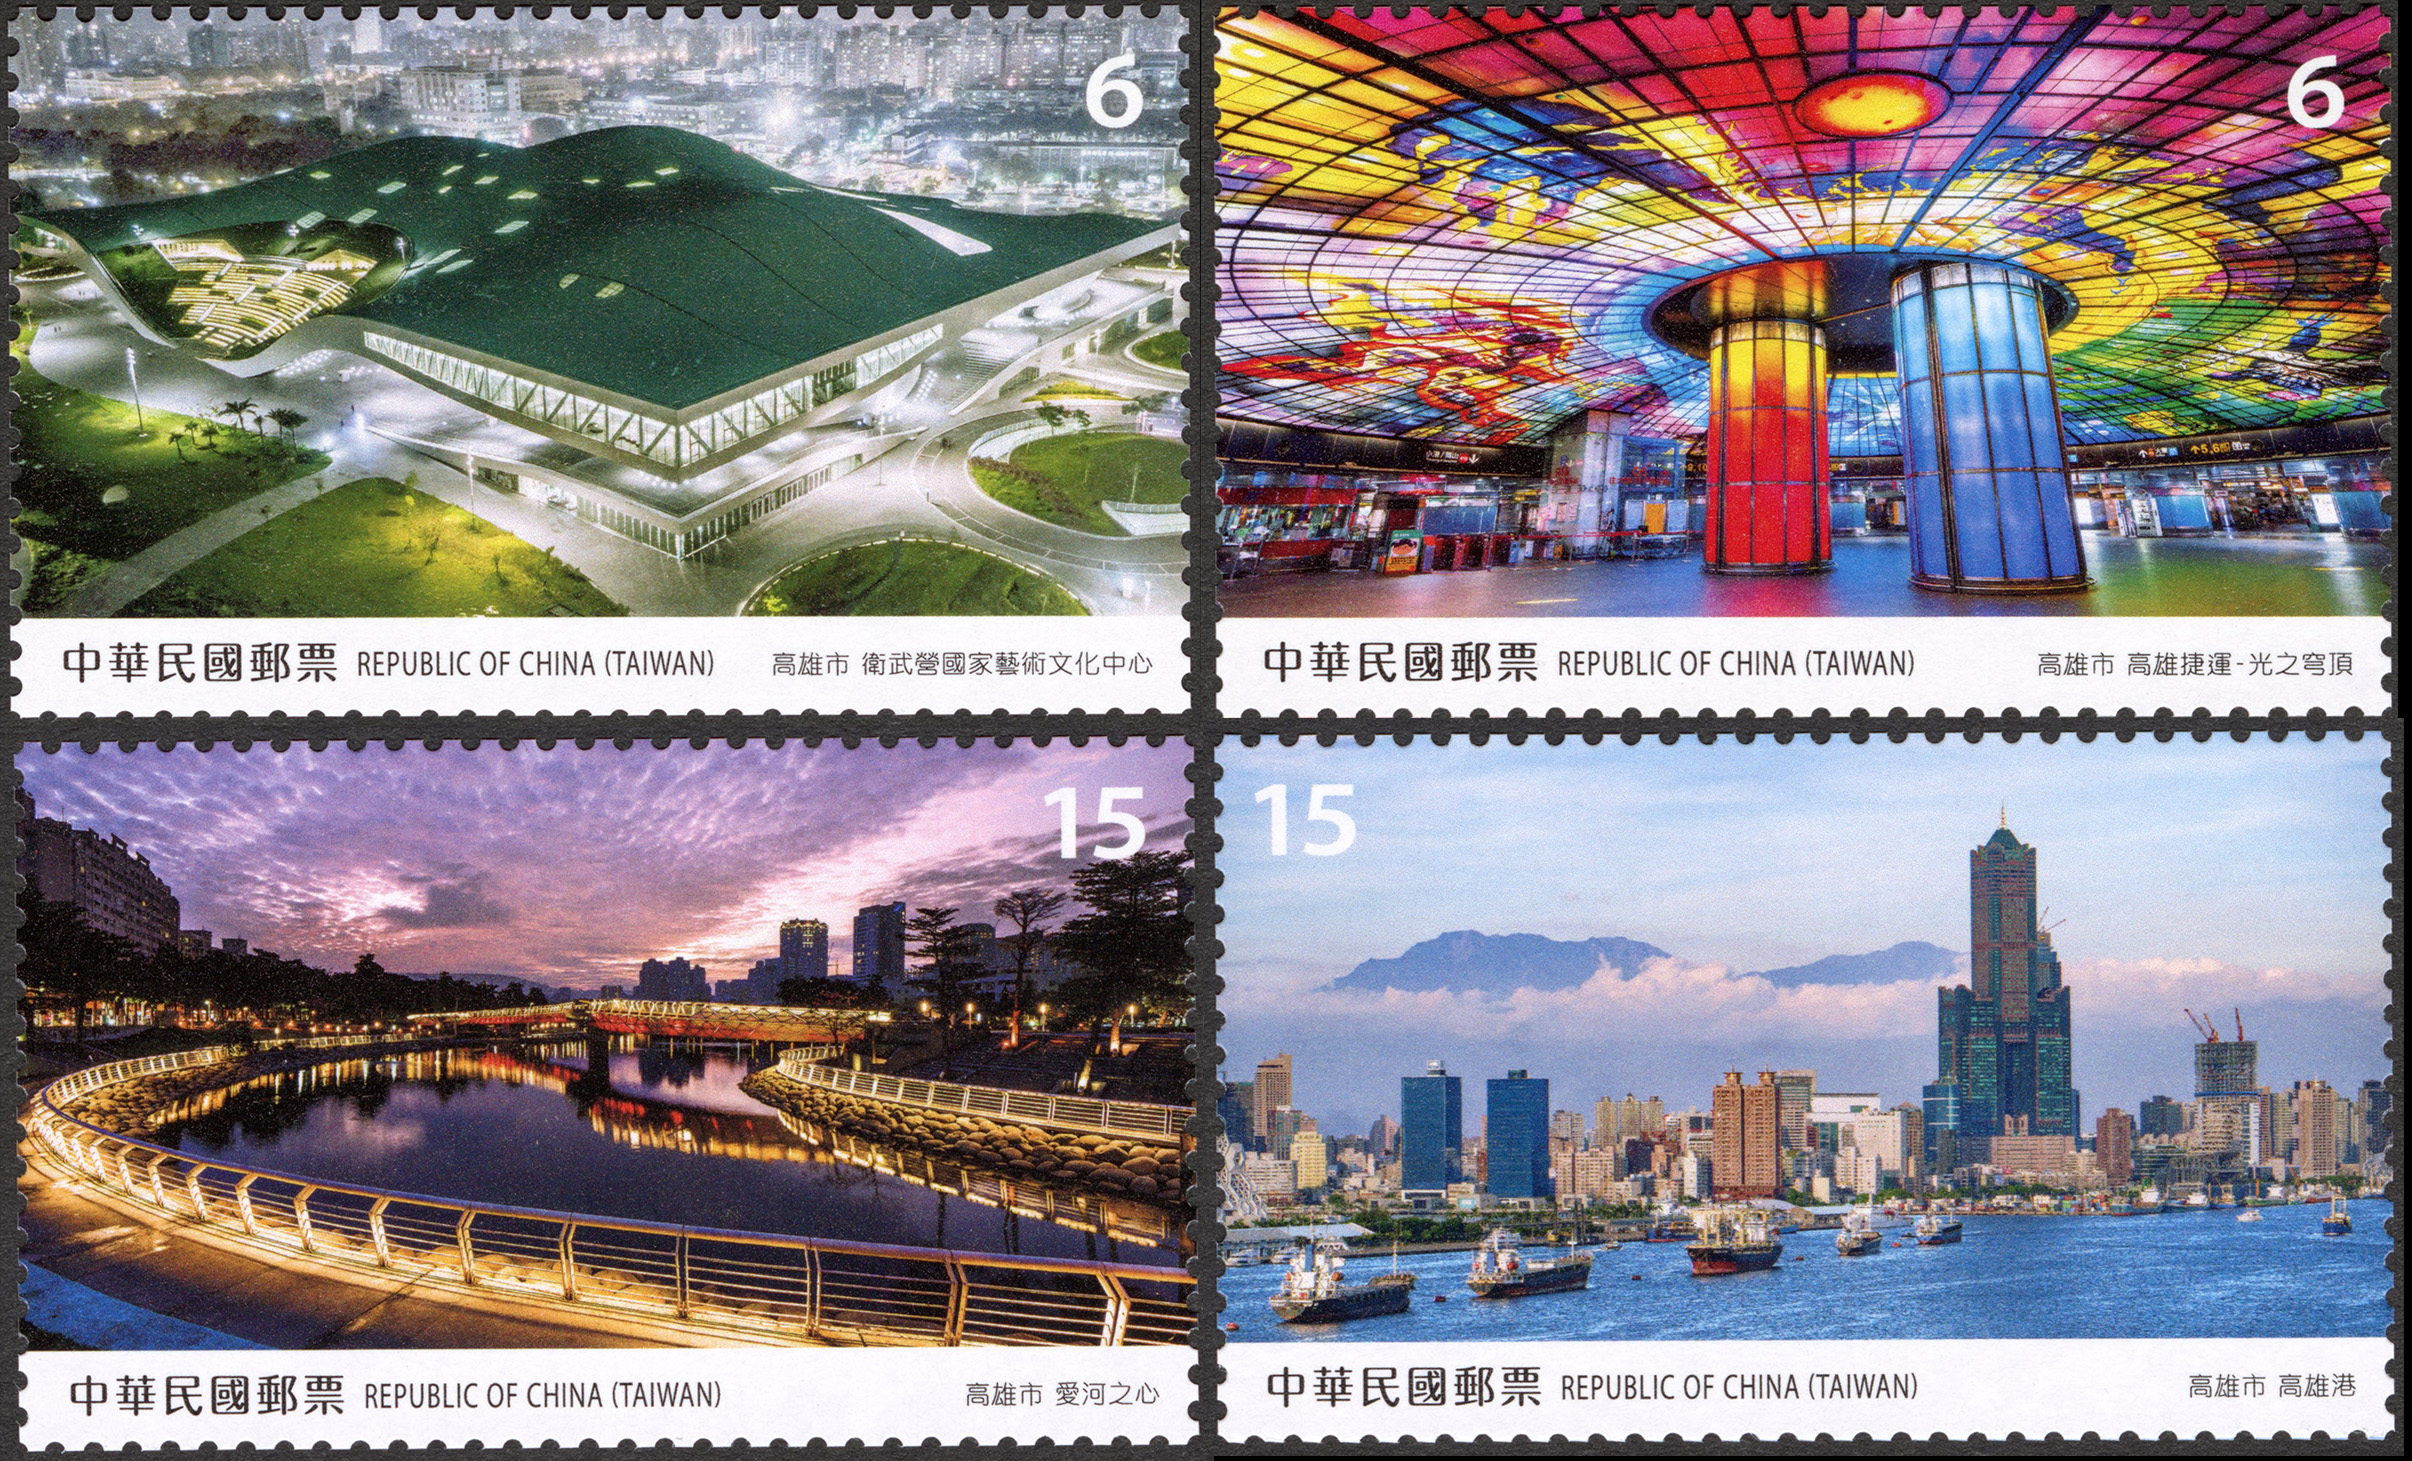 Taiwan Scenery Postage Stamps — Kaohsiung City